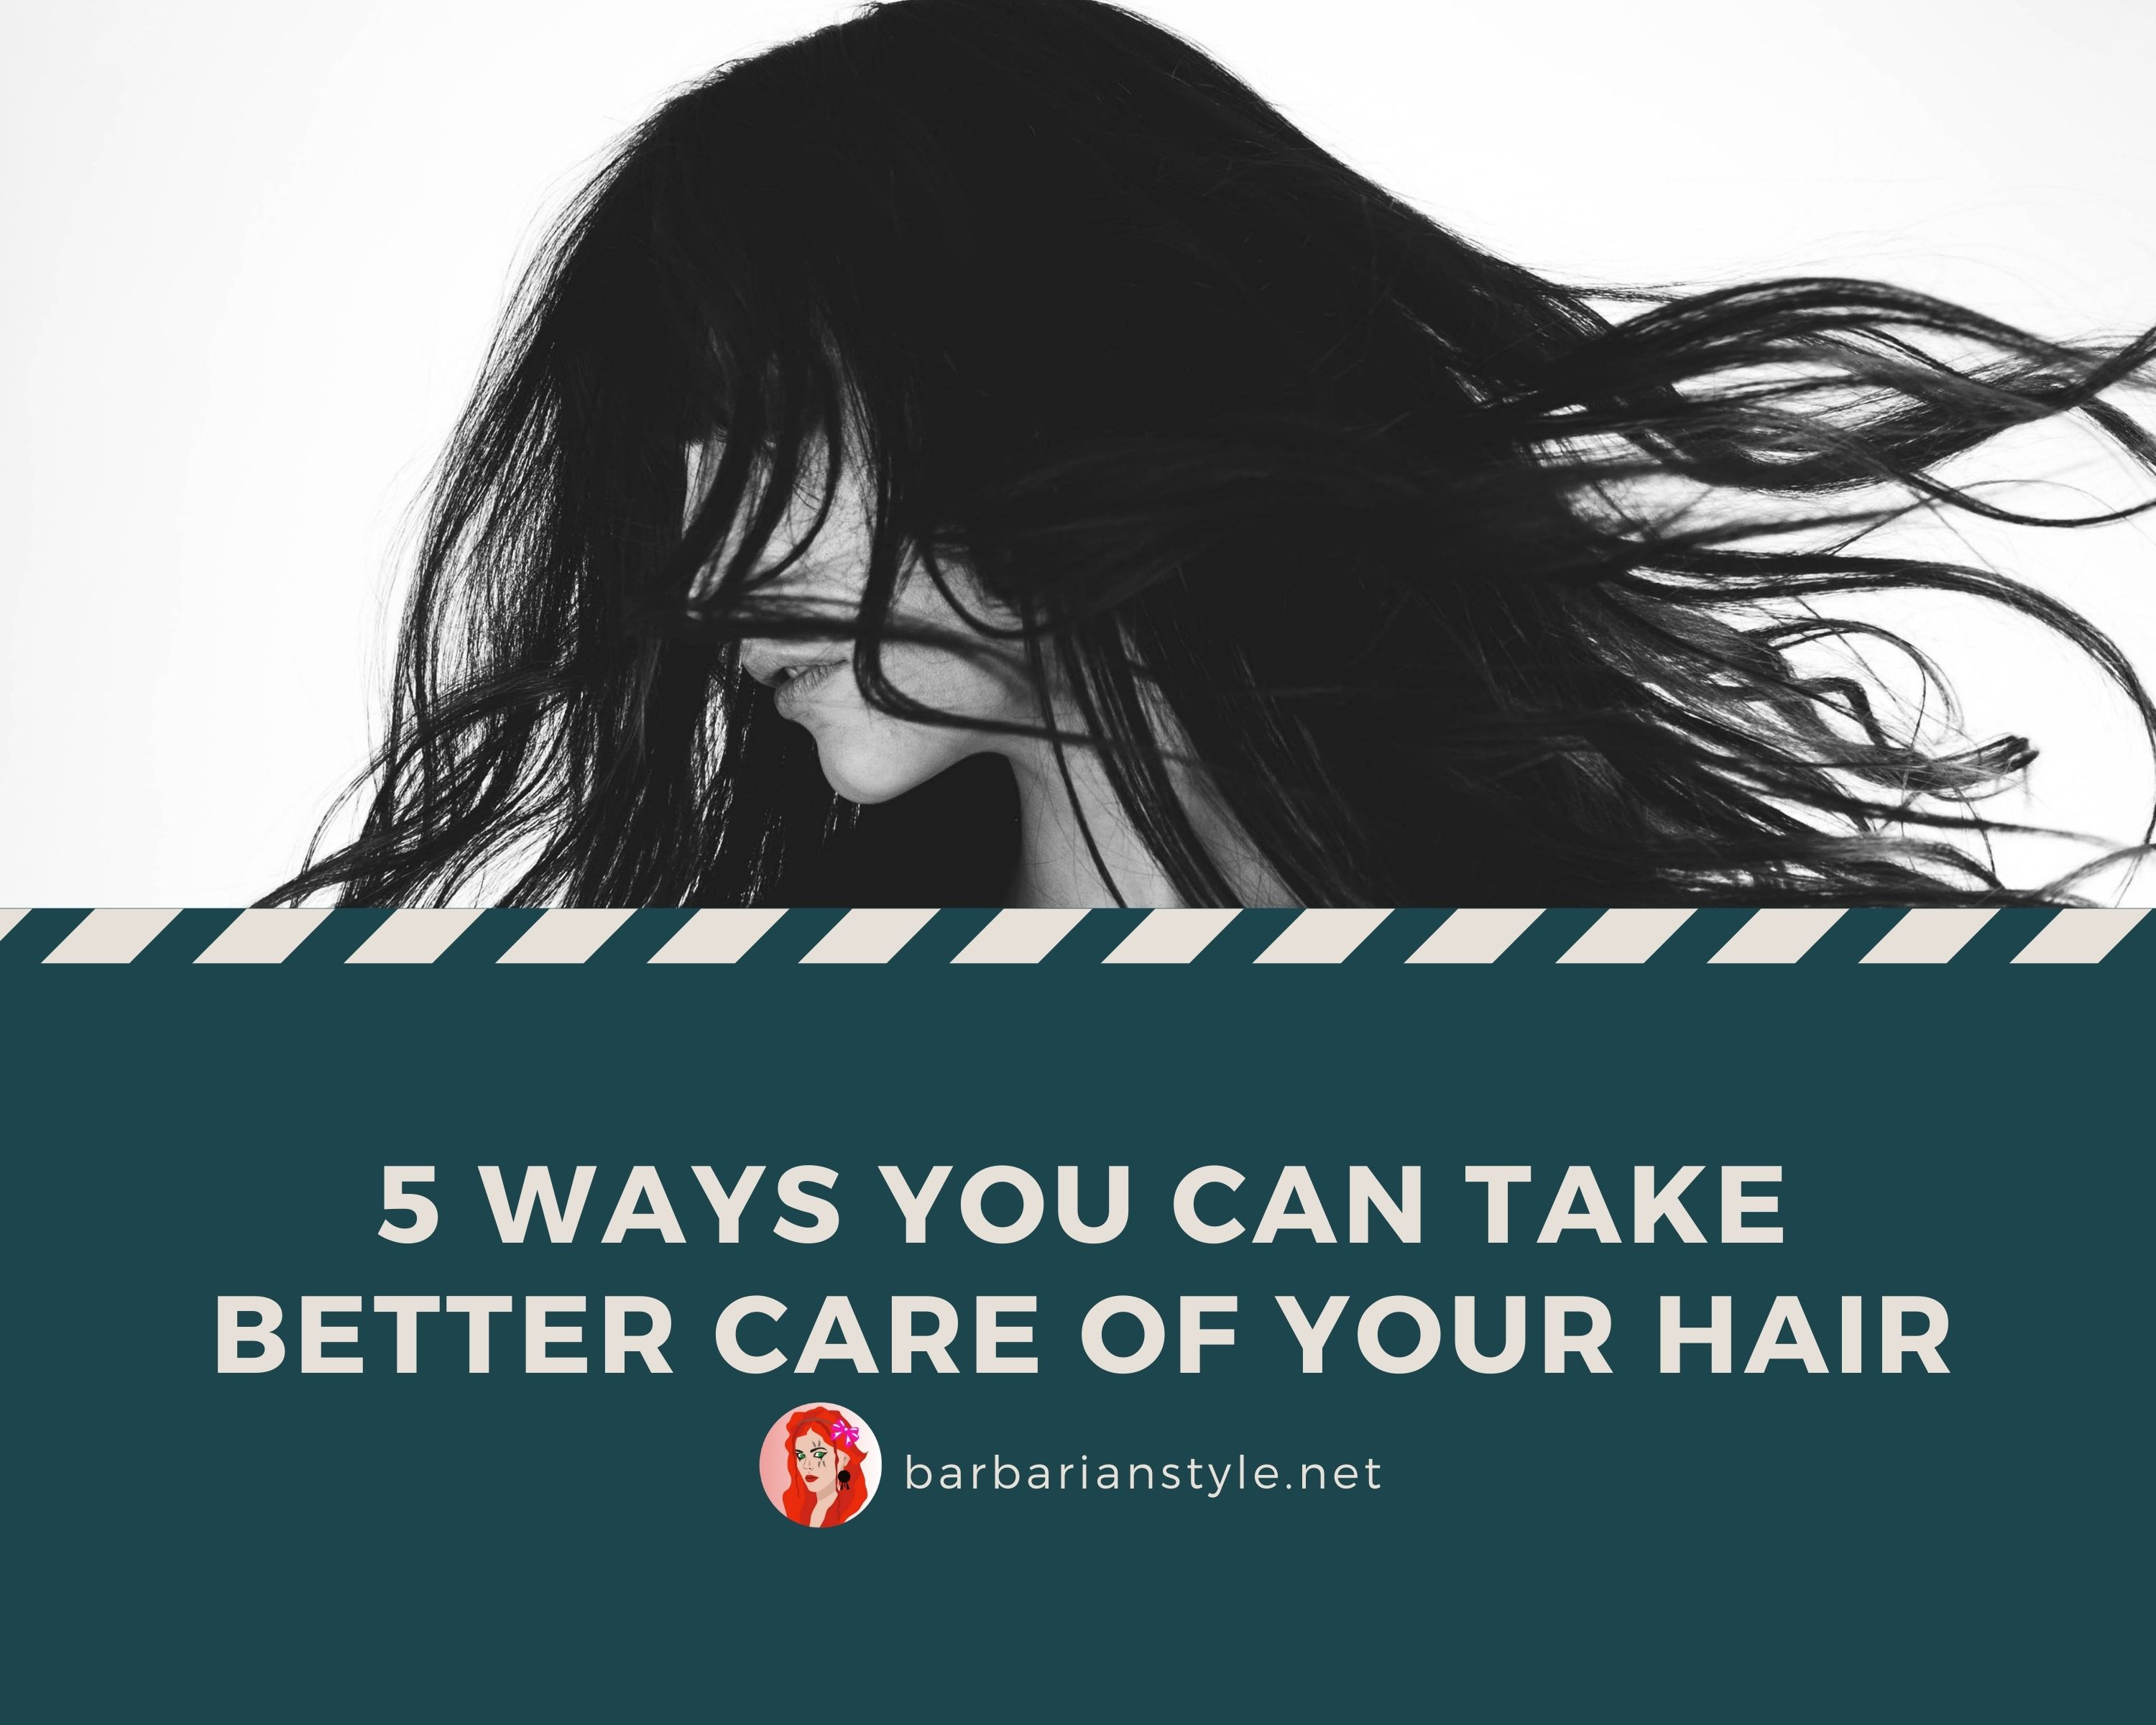 5 Coolest Ways You Can Take Better Care of Your Hair